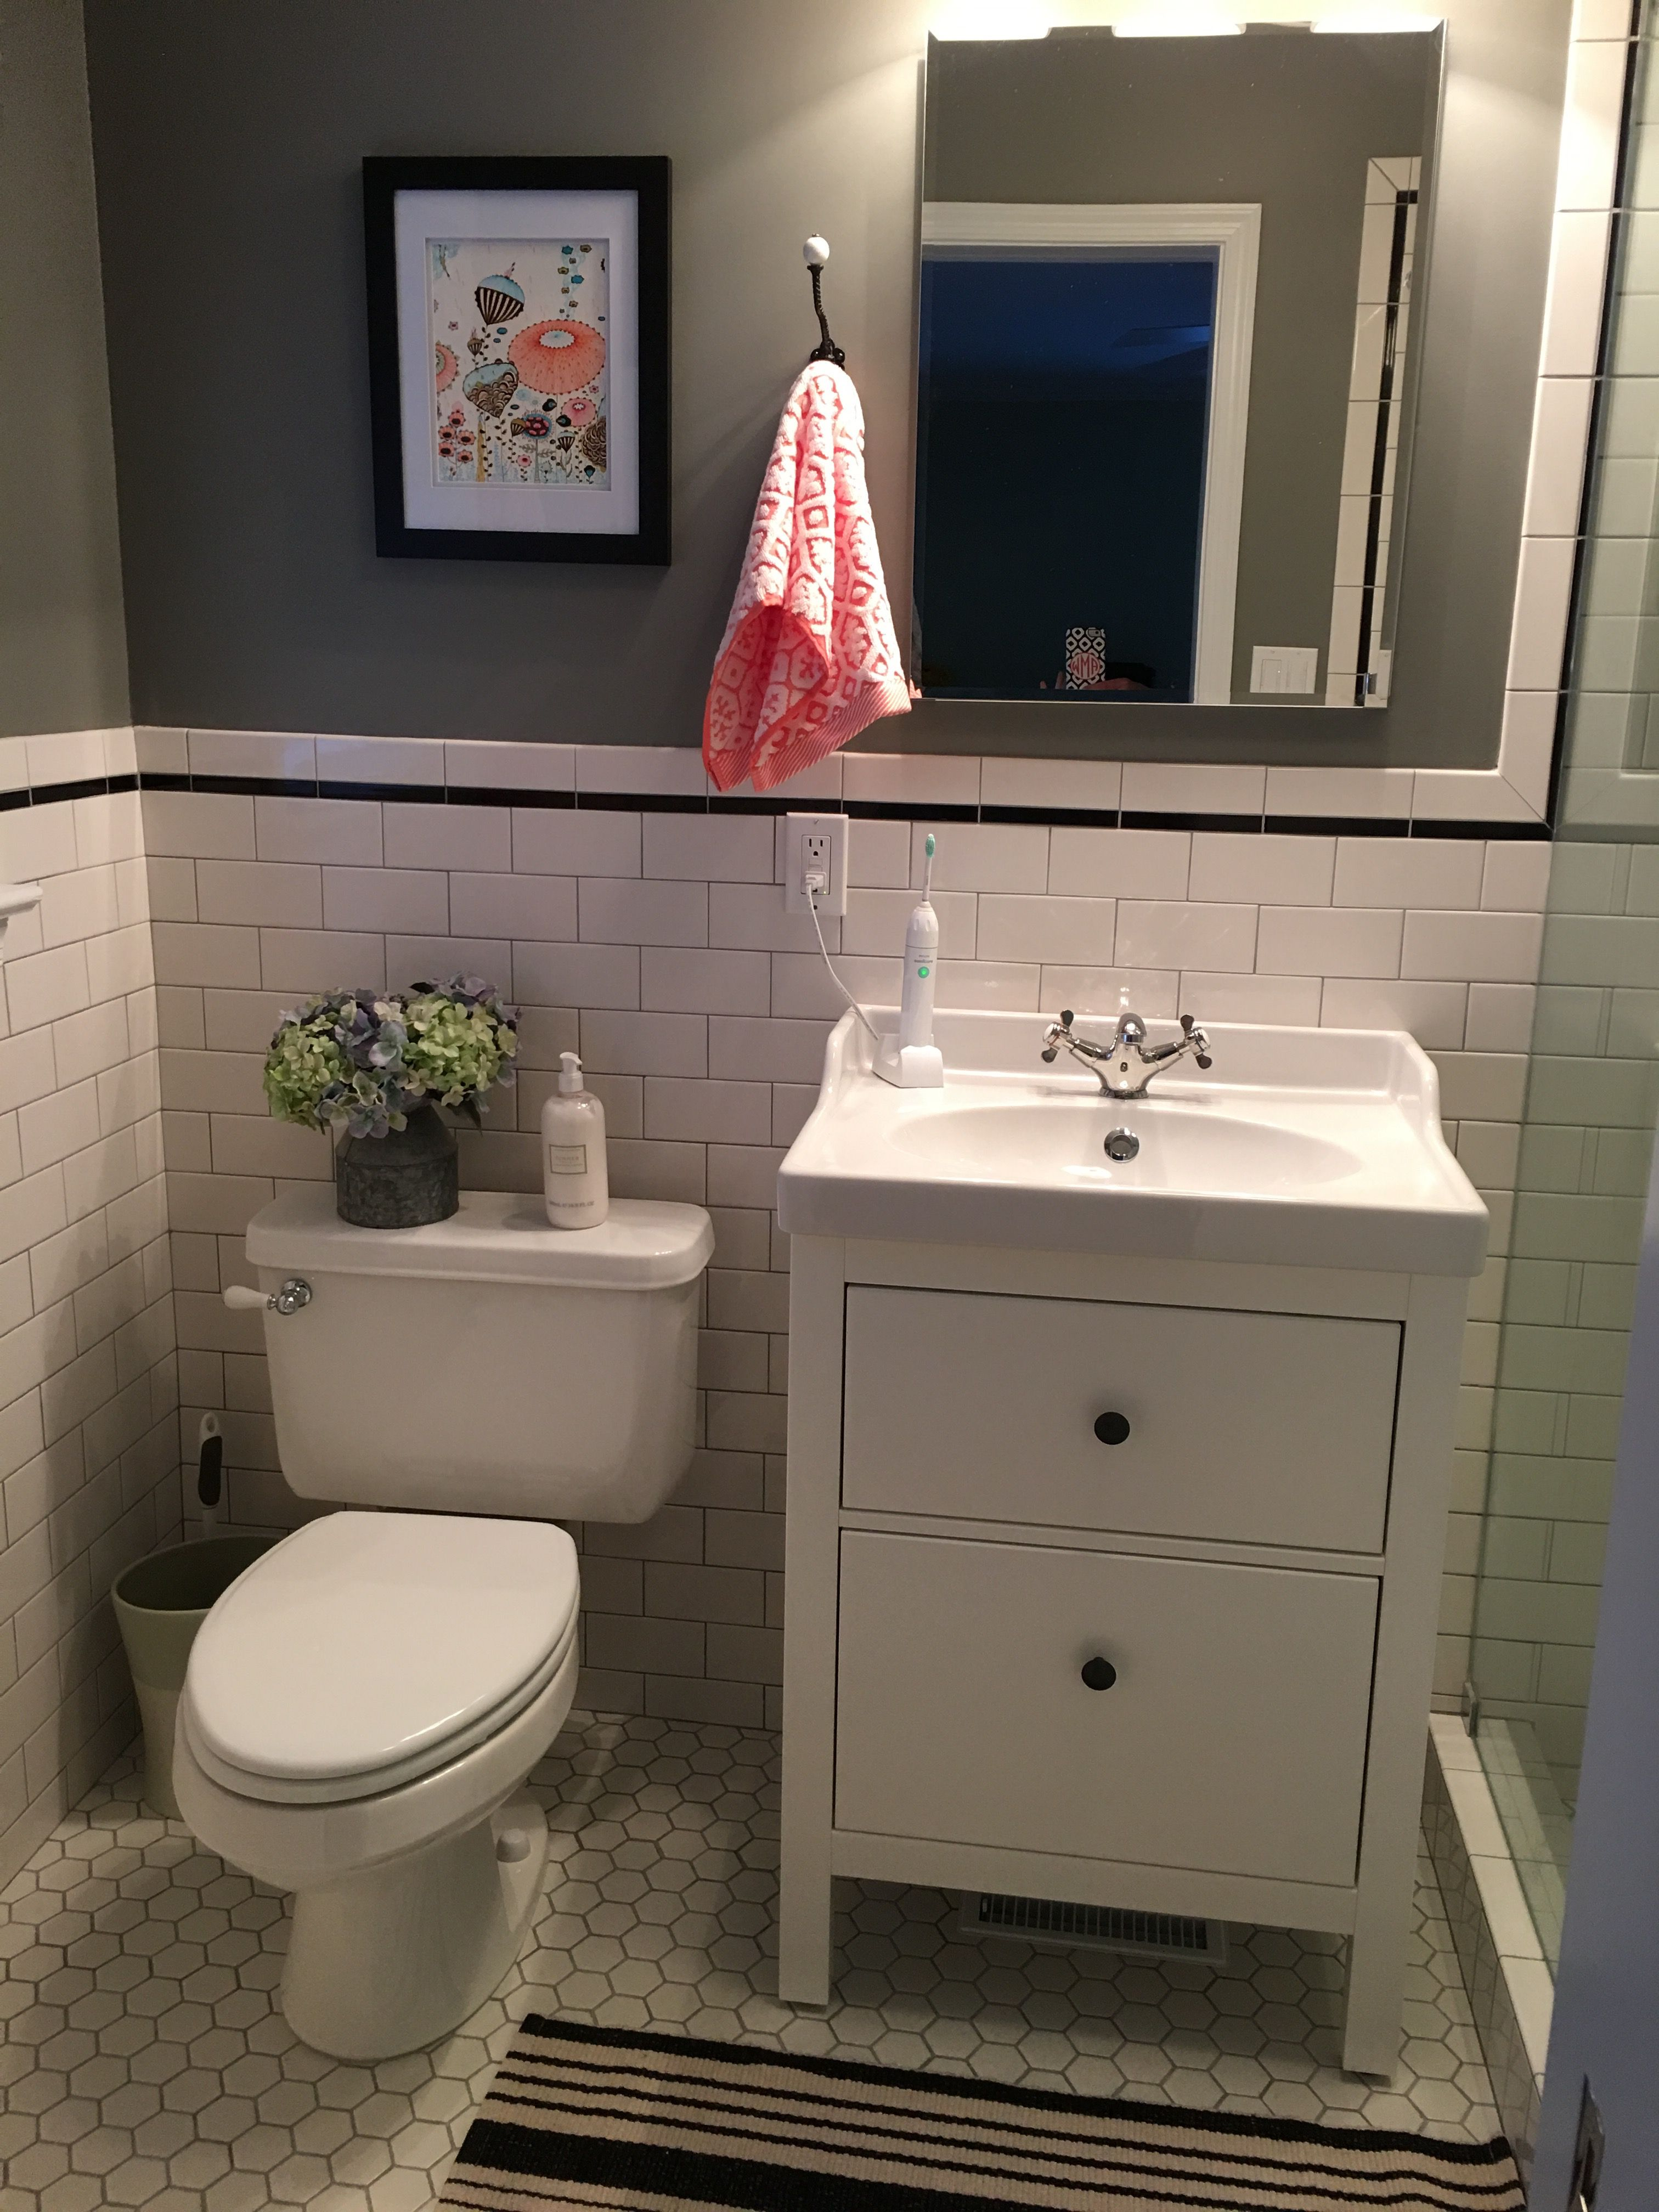 IKEA Hemnes Bathroom Vanity Bathroom remodel Pinterest